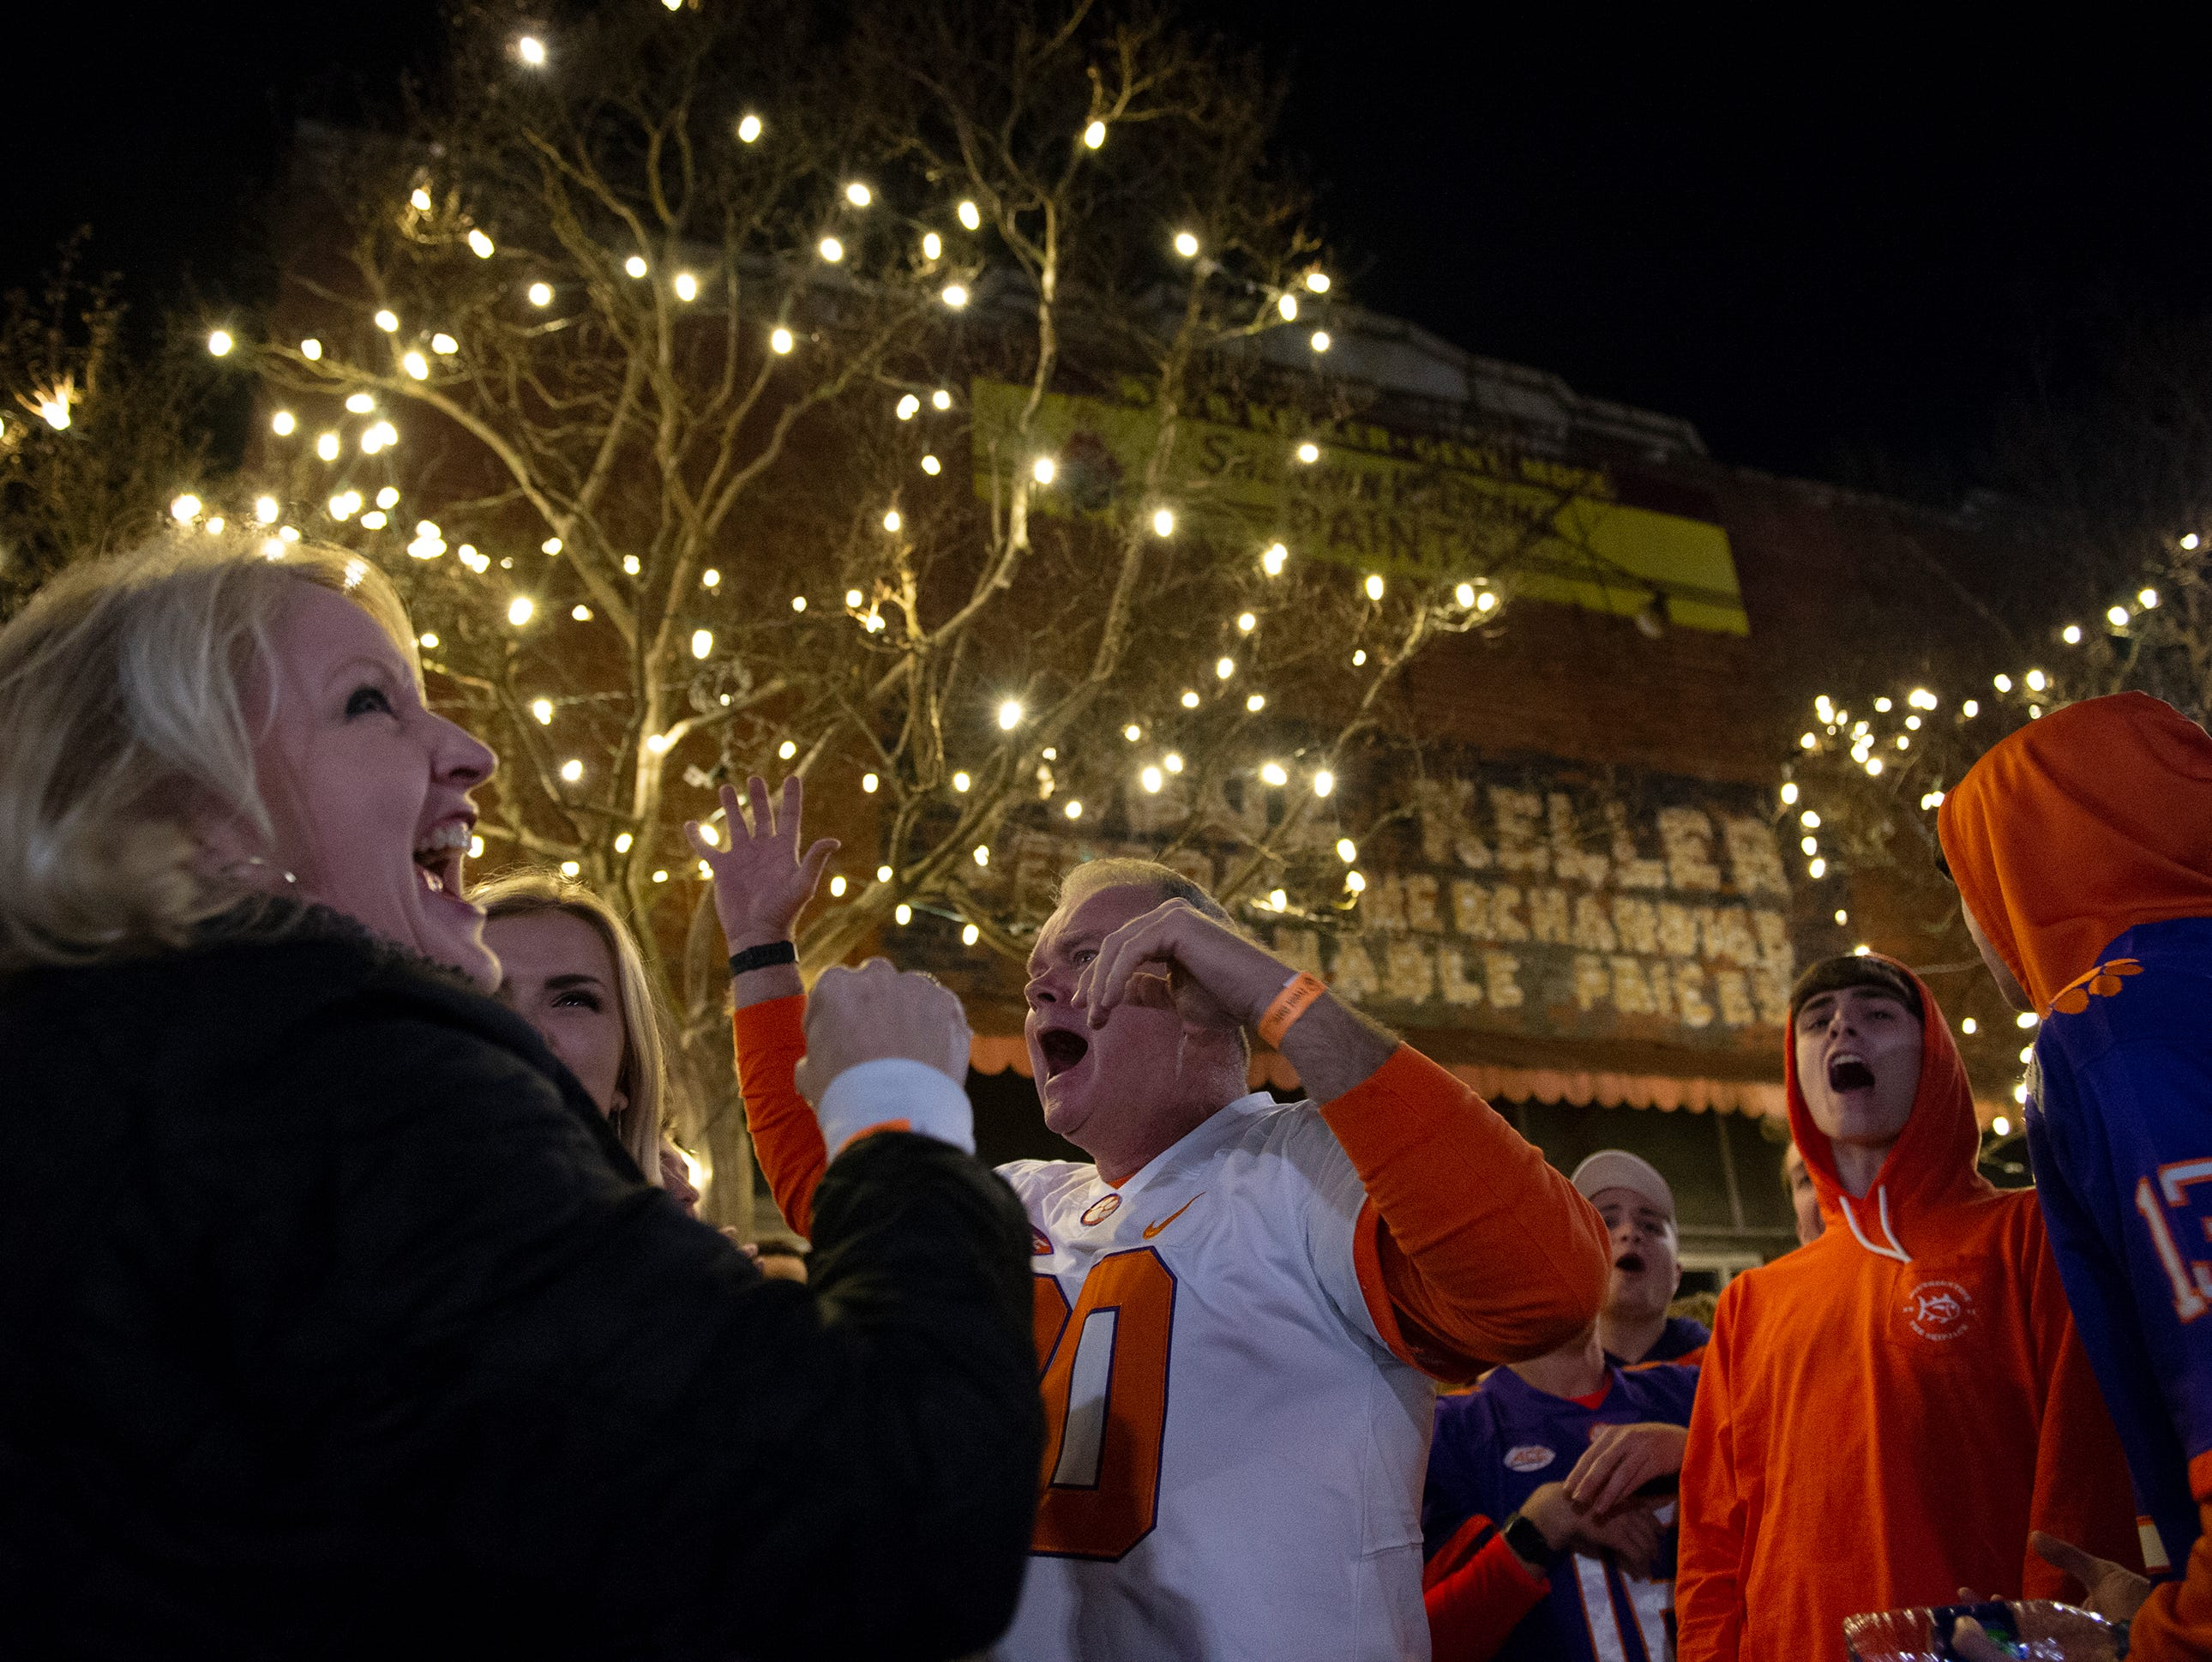 From left, Stephanie Cozzi, Samantha Cozzi, Steve Cozzi, Seth Warren and Jake George celebrate a Clemson touchdown while watching Clemson play Alabama in the College Football Playoff National Championship Monday, Jan. 7, 2019. Steve and Stephanie Cozzi travelled from New Jersey to watch the game with their daughter Samantha, a junior. George and Warren are both freshman at Clemson.